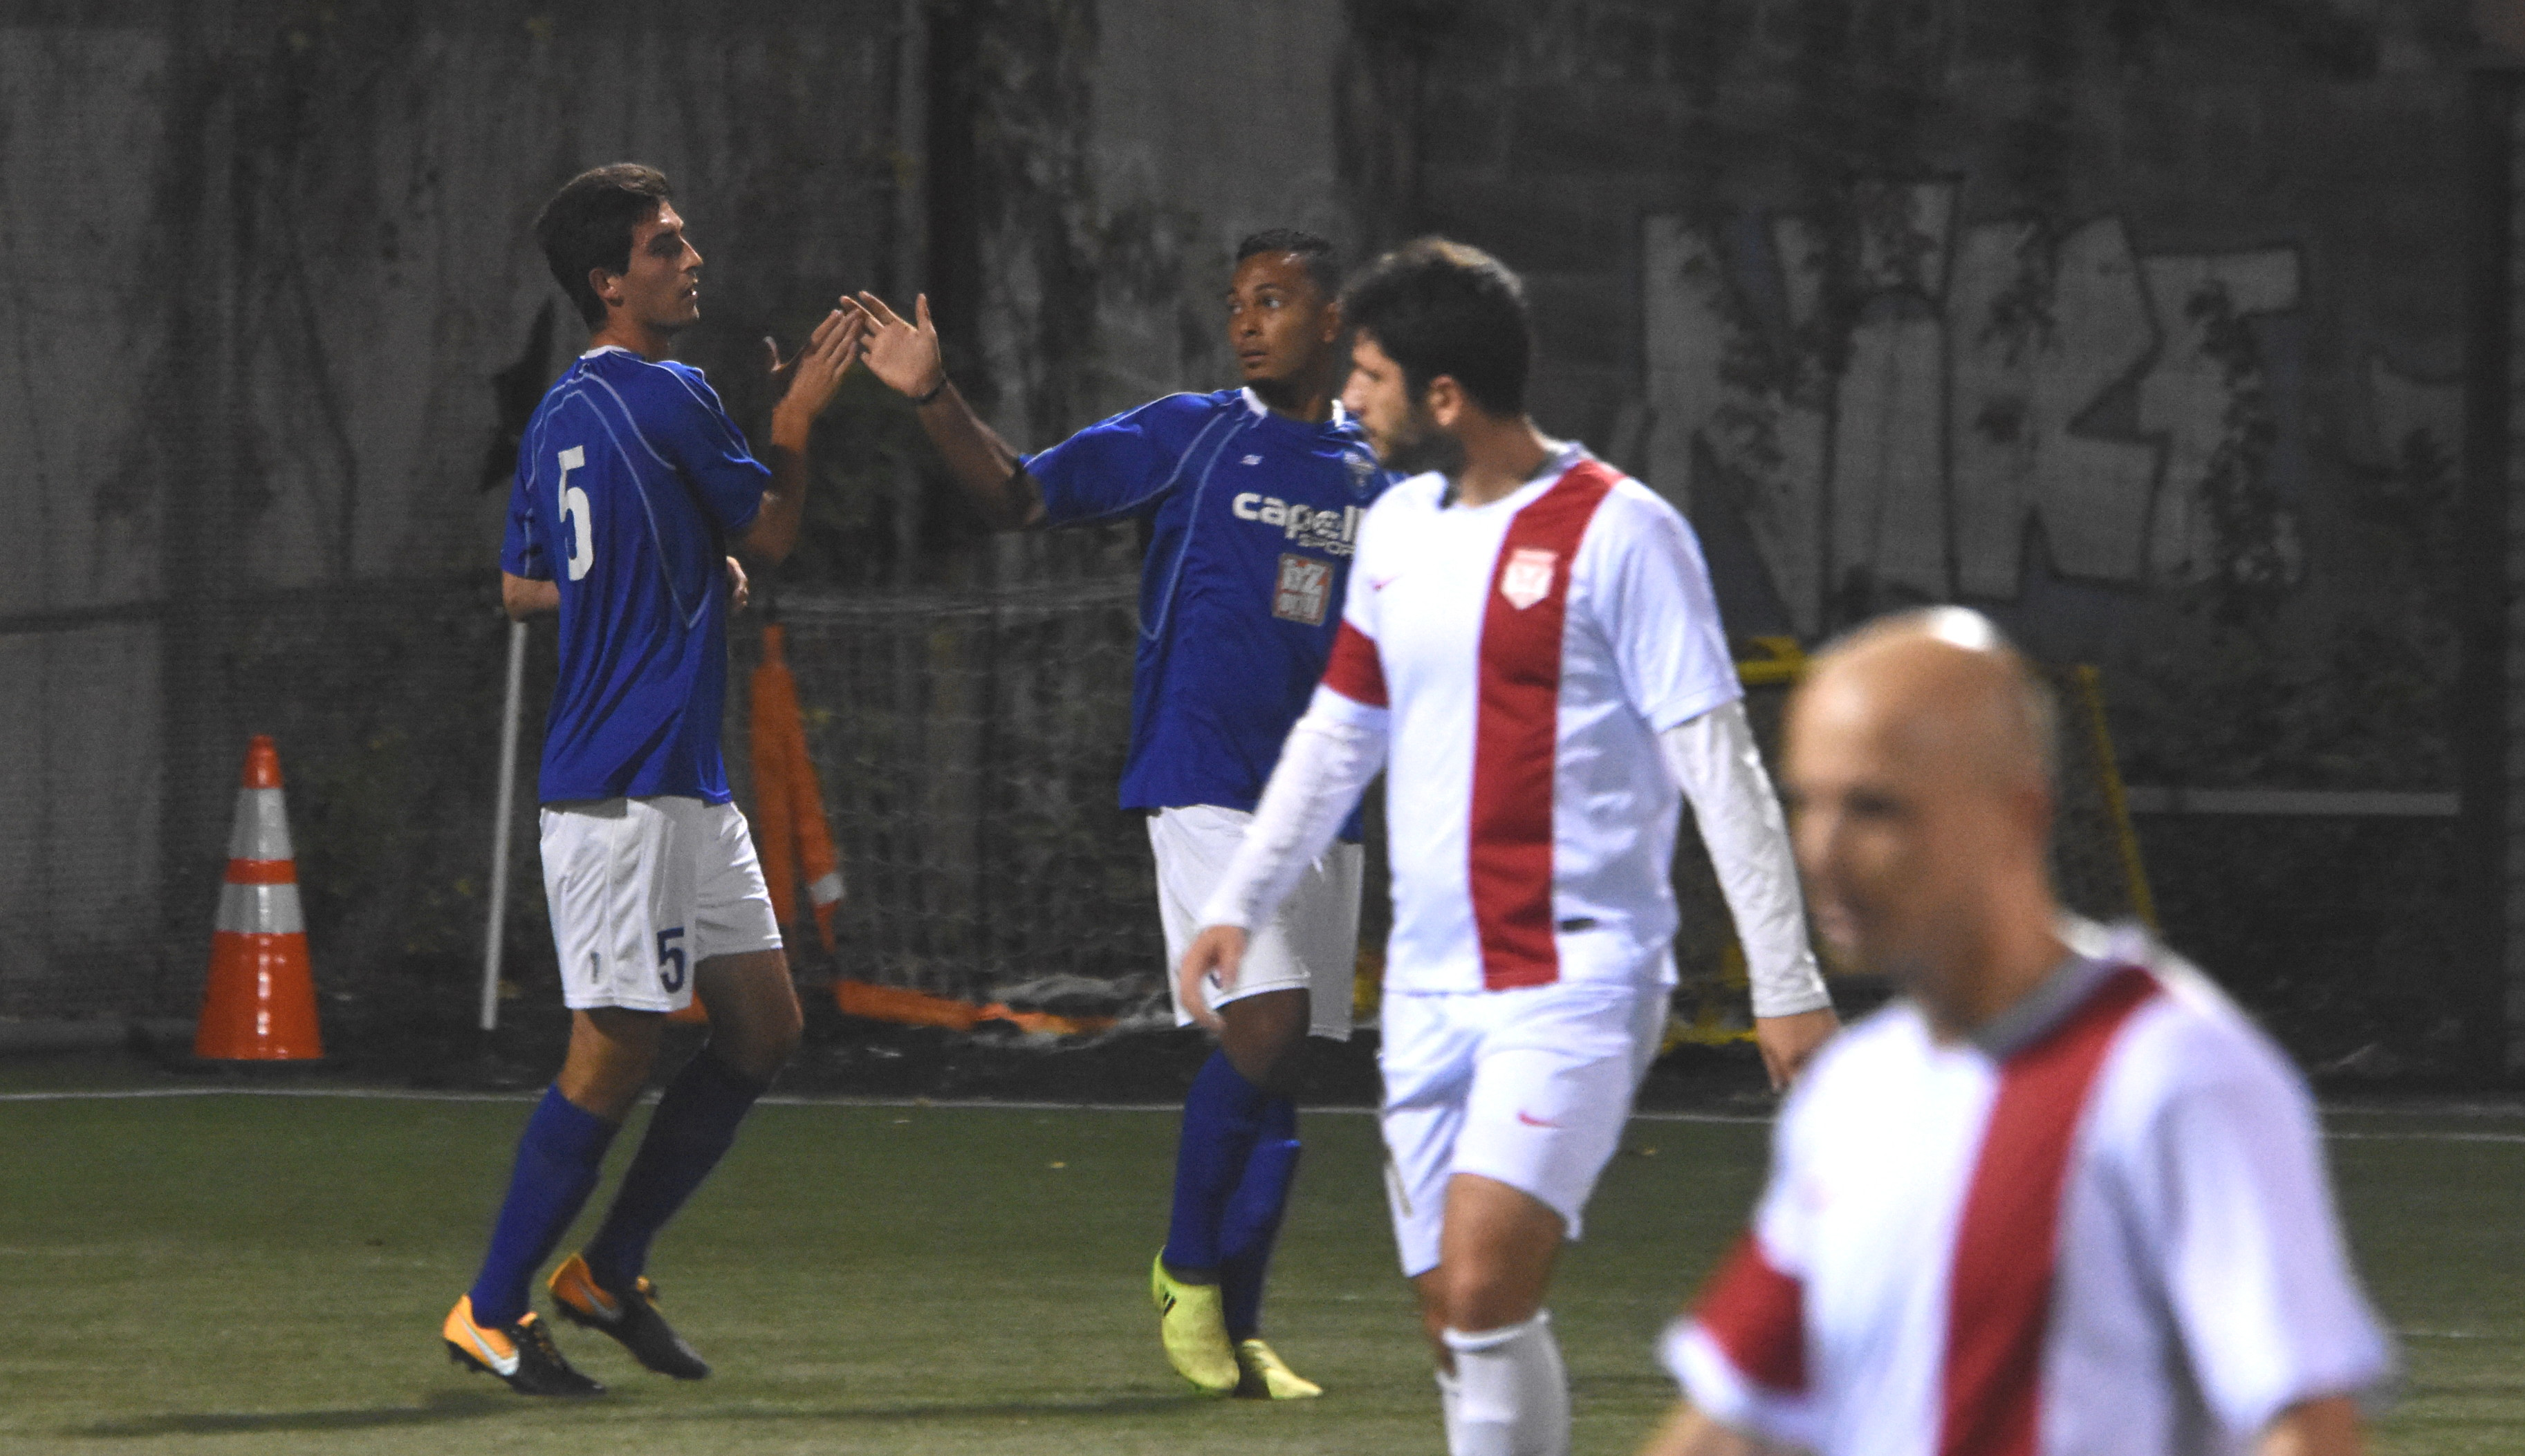 Botte hits four as NY Greeks roll past Serbia 7-0 in Manning Cup first round